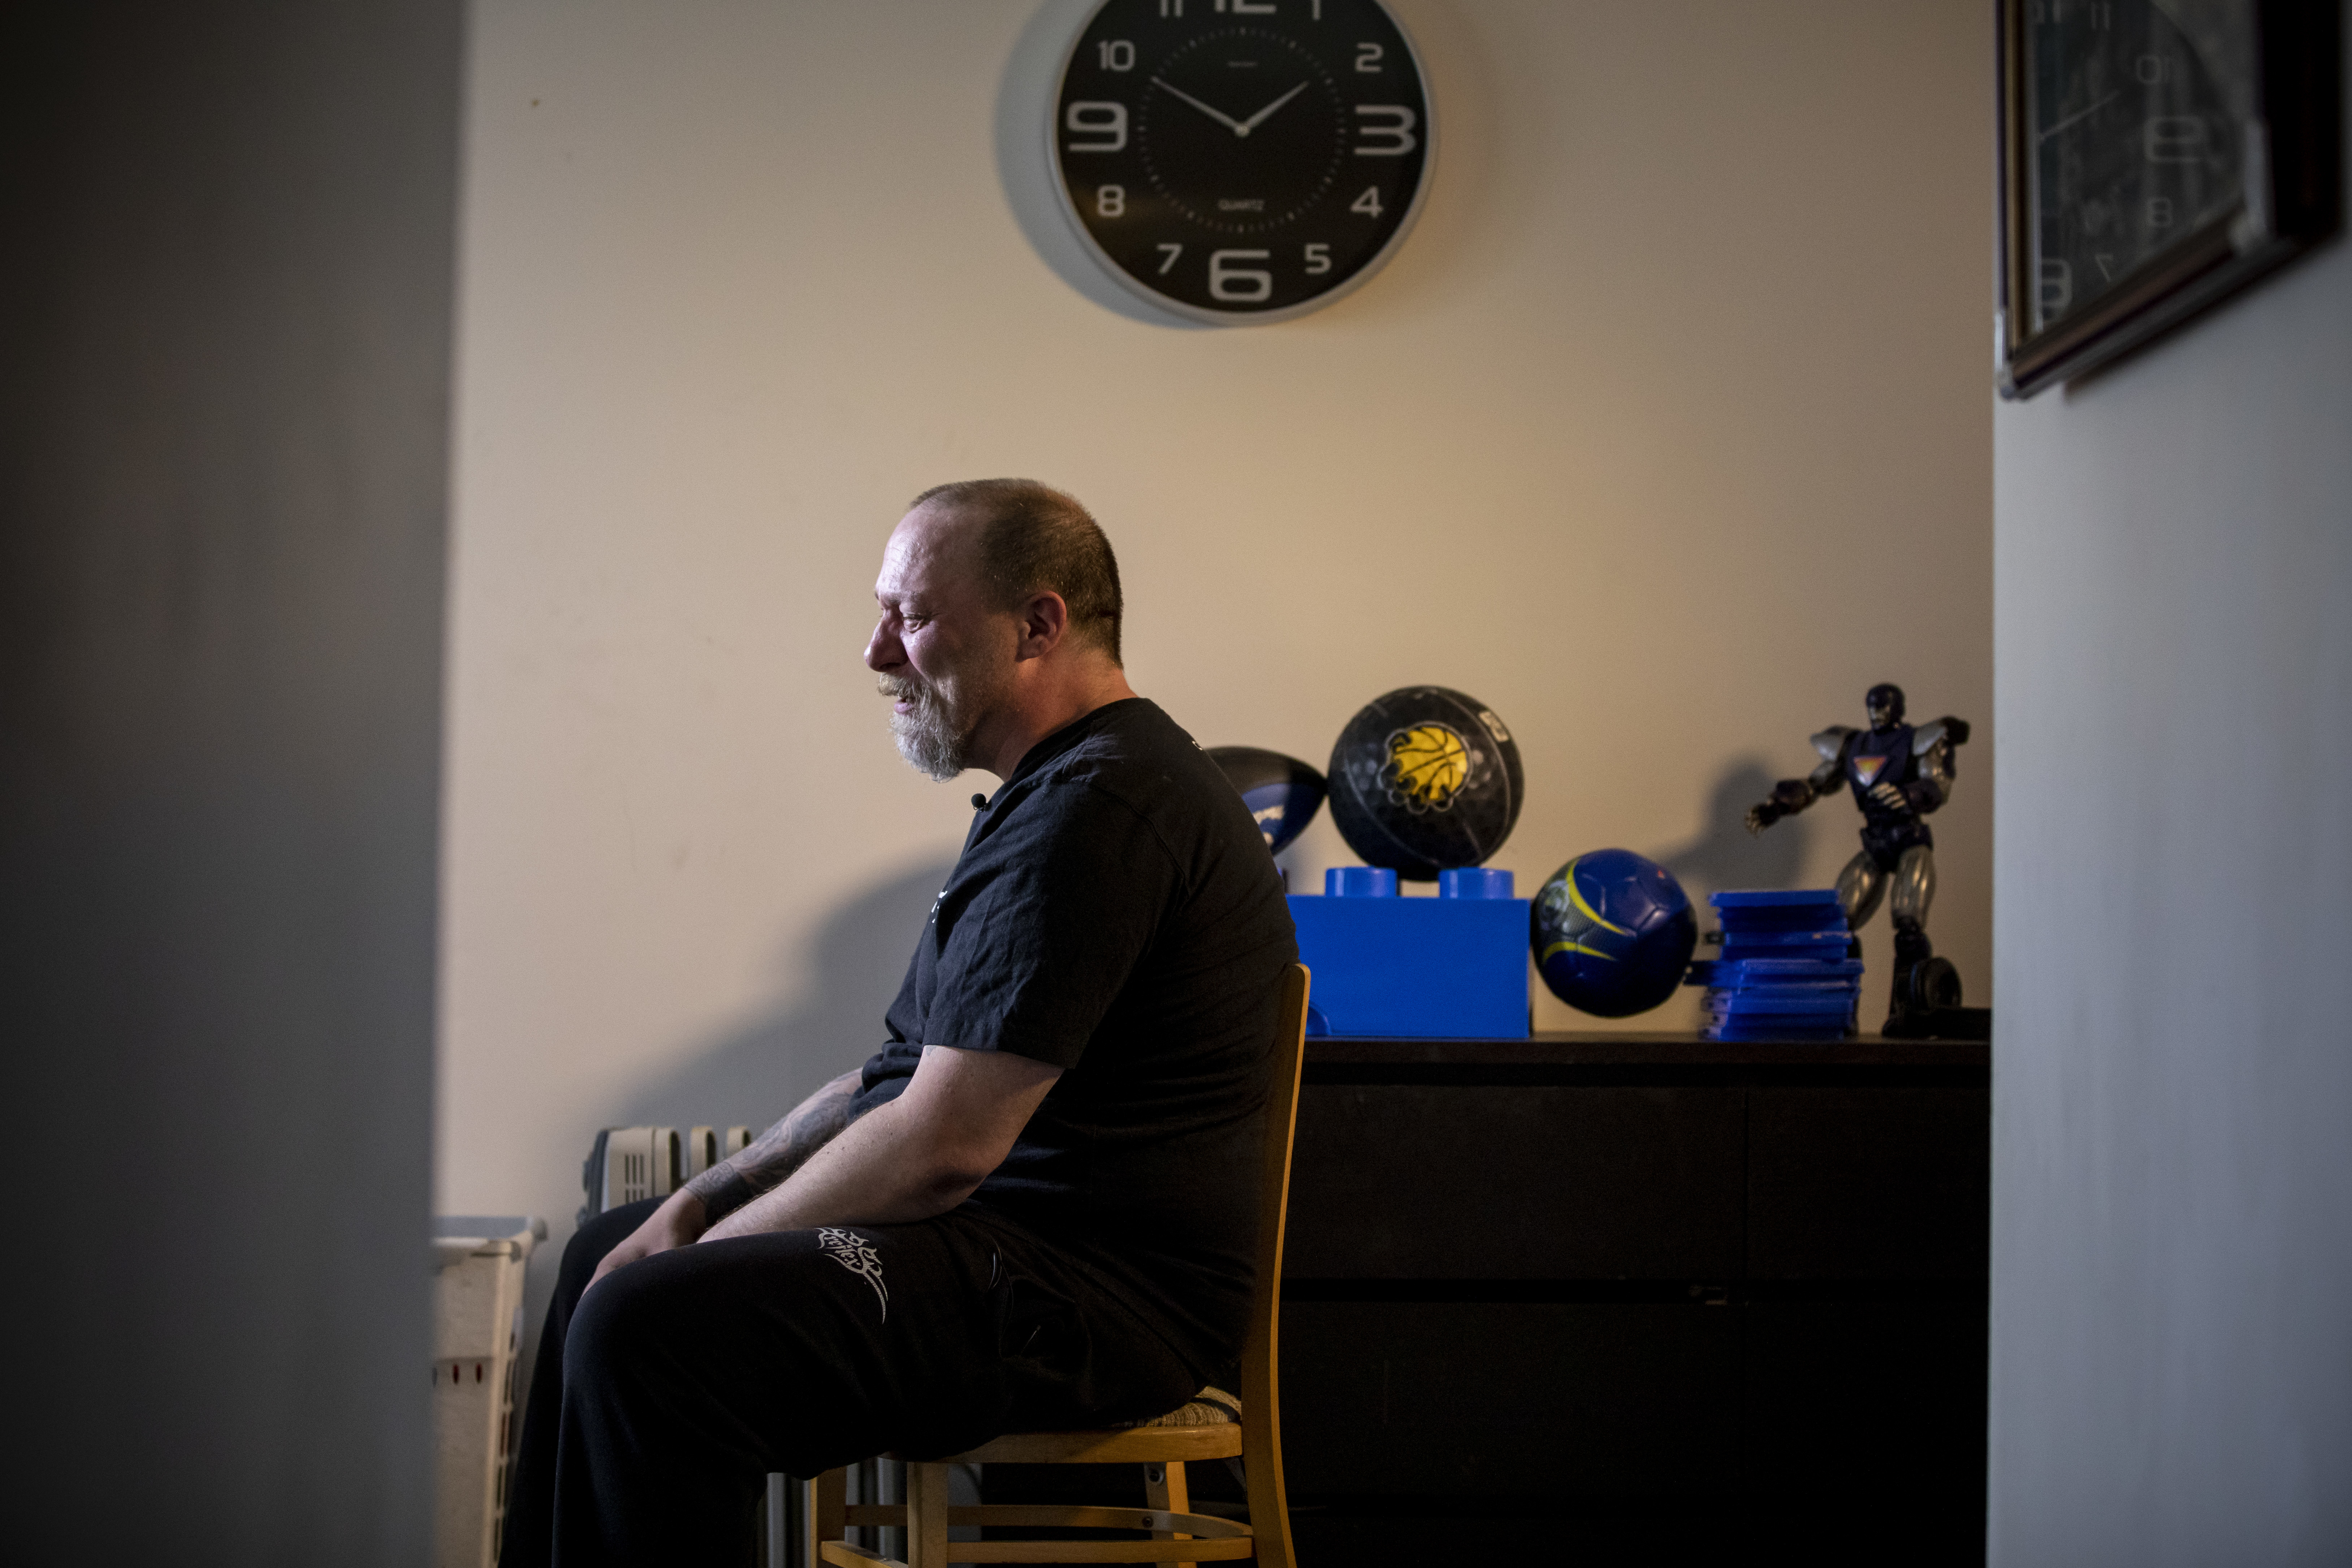 Aron Crimeni, father of 14-year-old Carson Crimeni who died of an apparent overdose, weeps while sitting in his son's room in Langley, British Columbia on Aug. 9, 2019. (Ben Nelms/CBC)